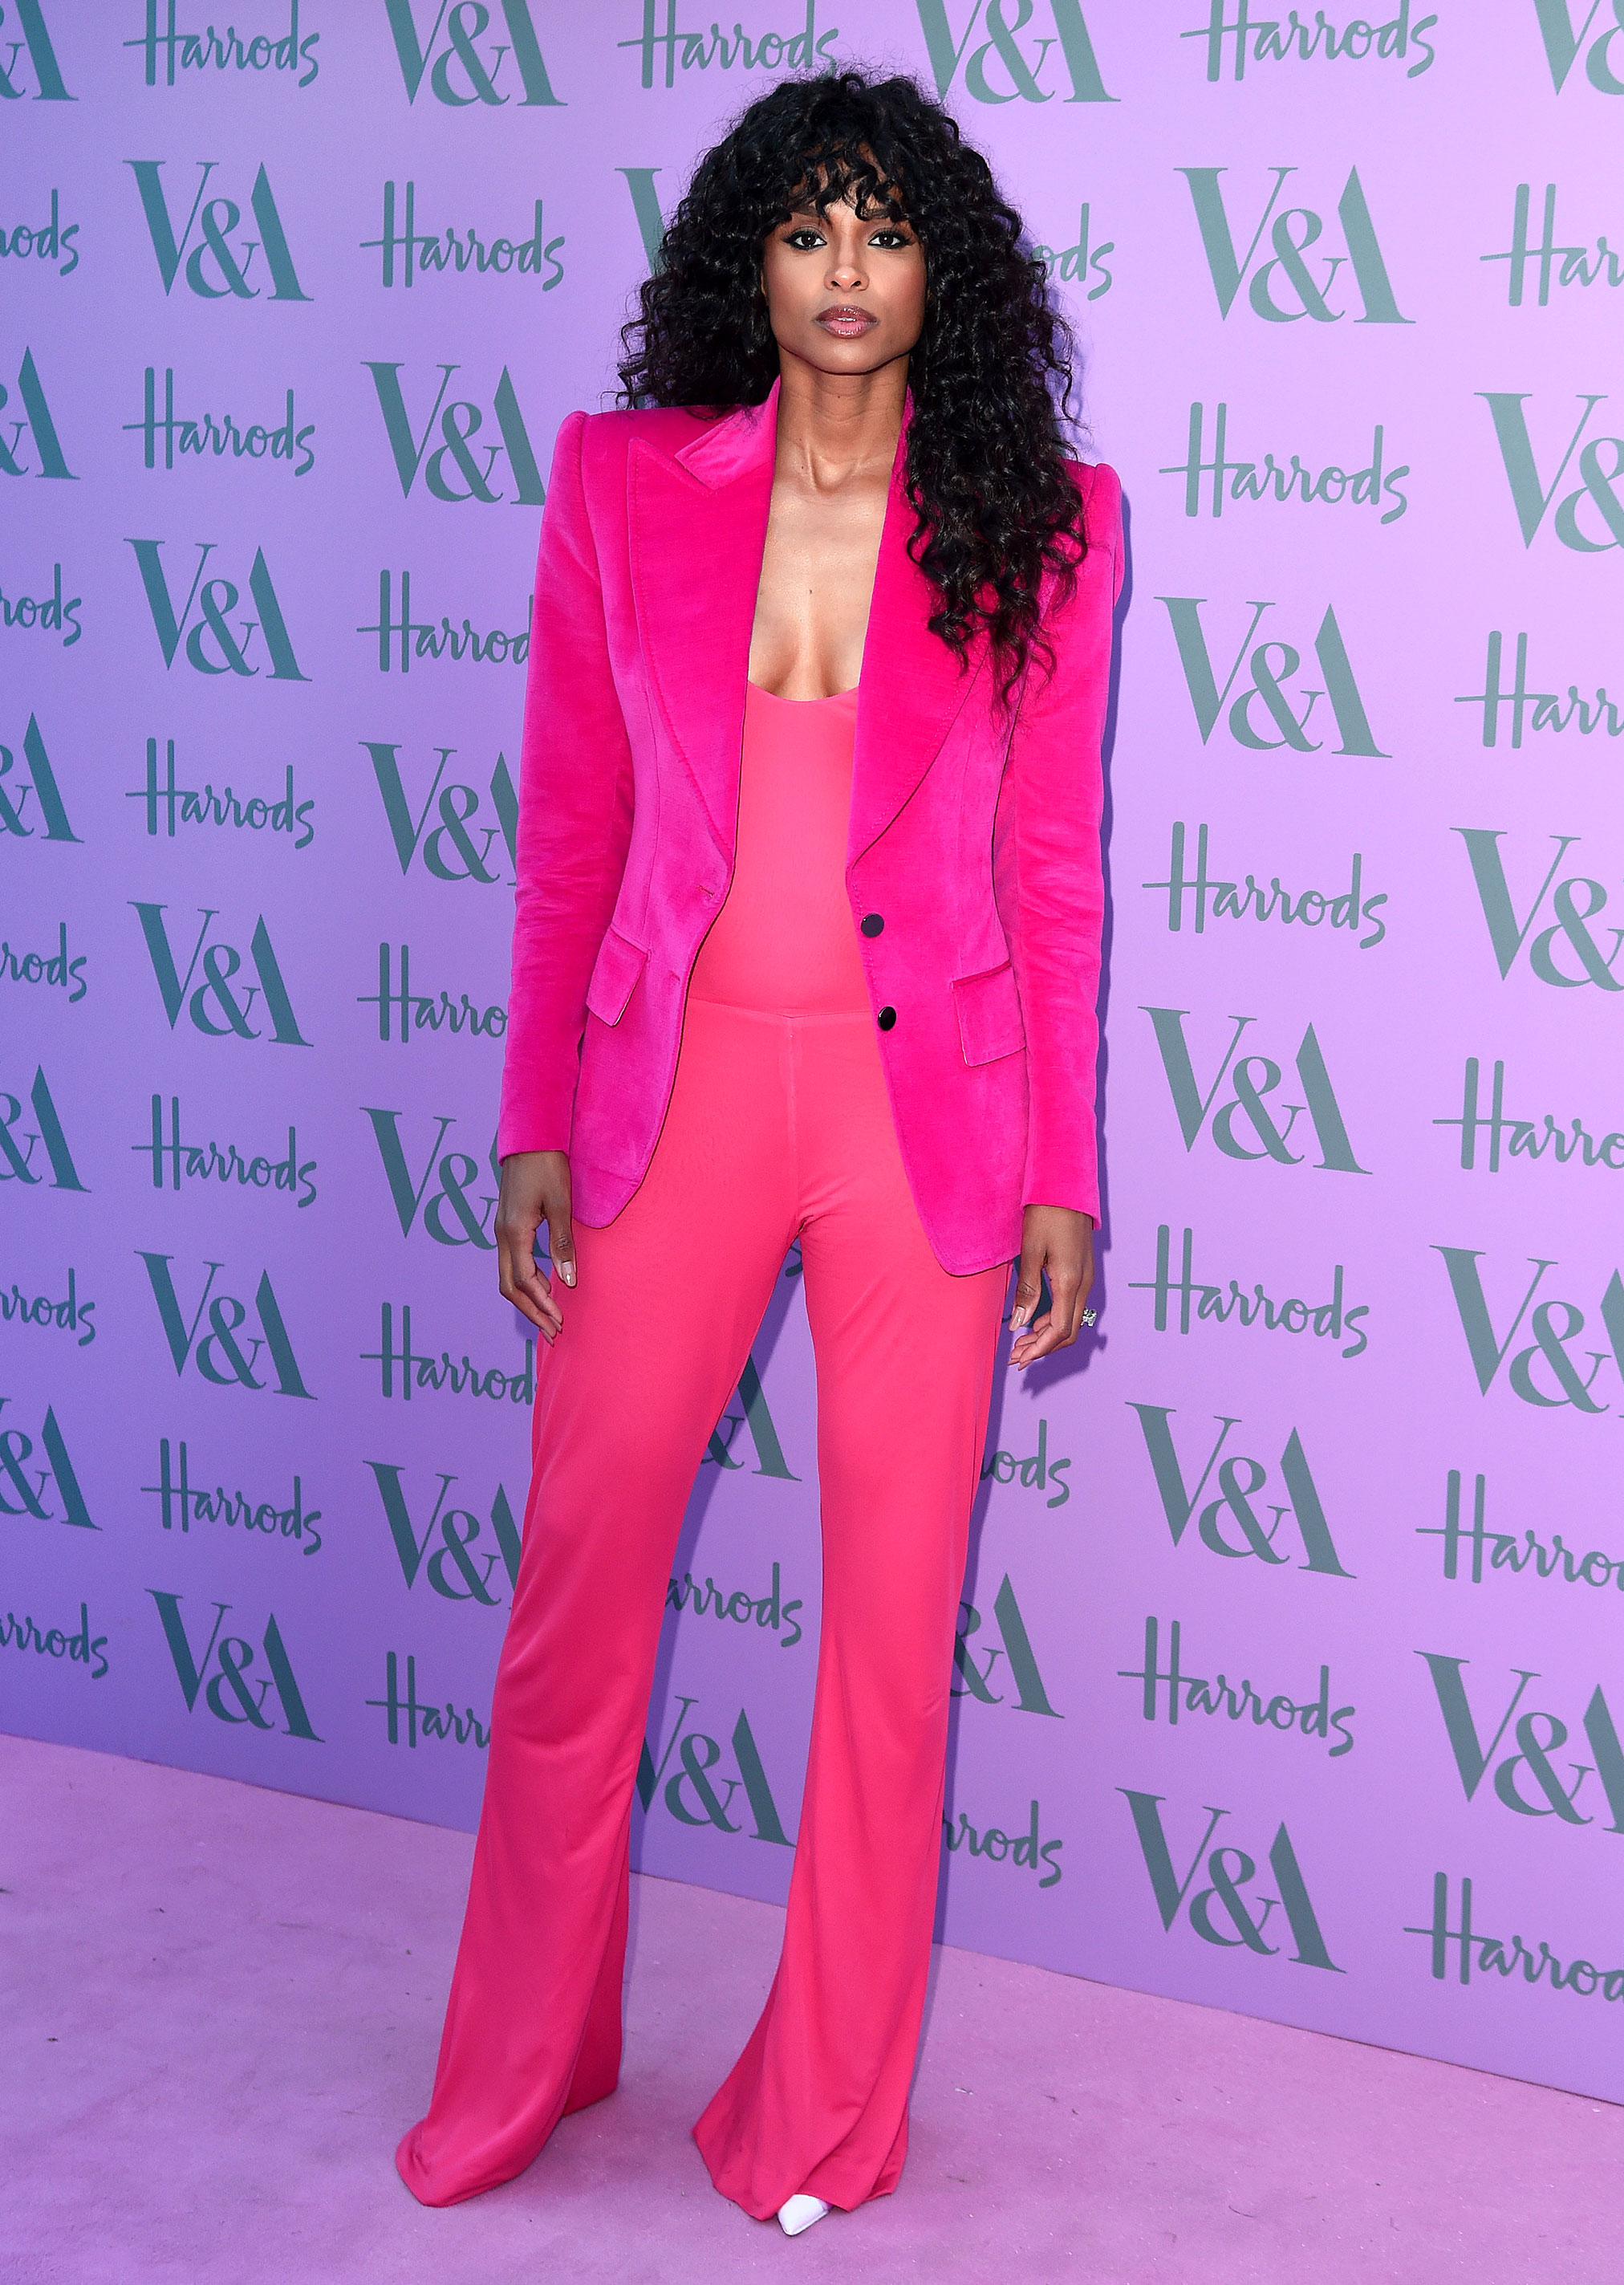 ciara - In a hot pink Tom Ford velvet jacket, jumpsuit and satin kicks at the V&A Summer Party.